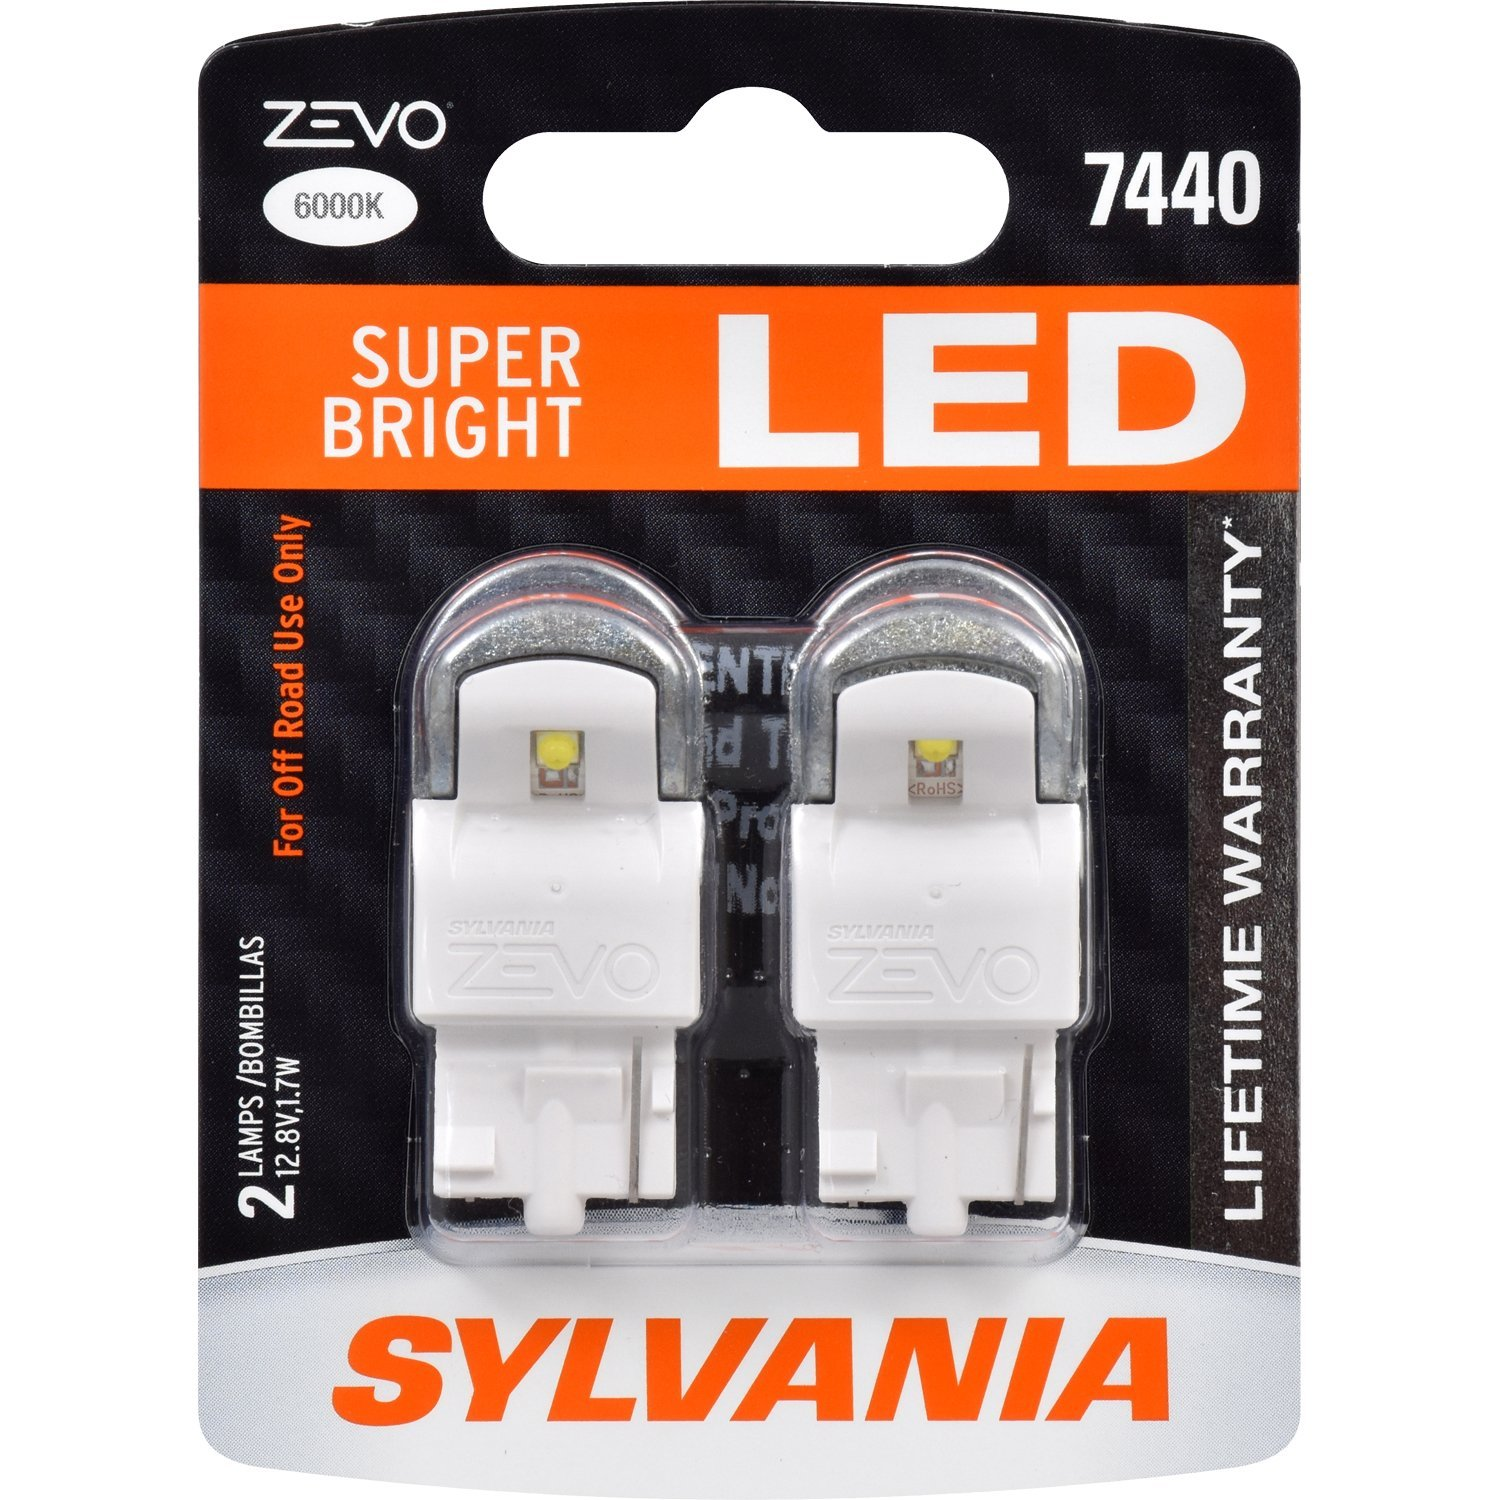 W21W Sylvania ZEVO Super Bright LED 6000K ส่งฟรี